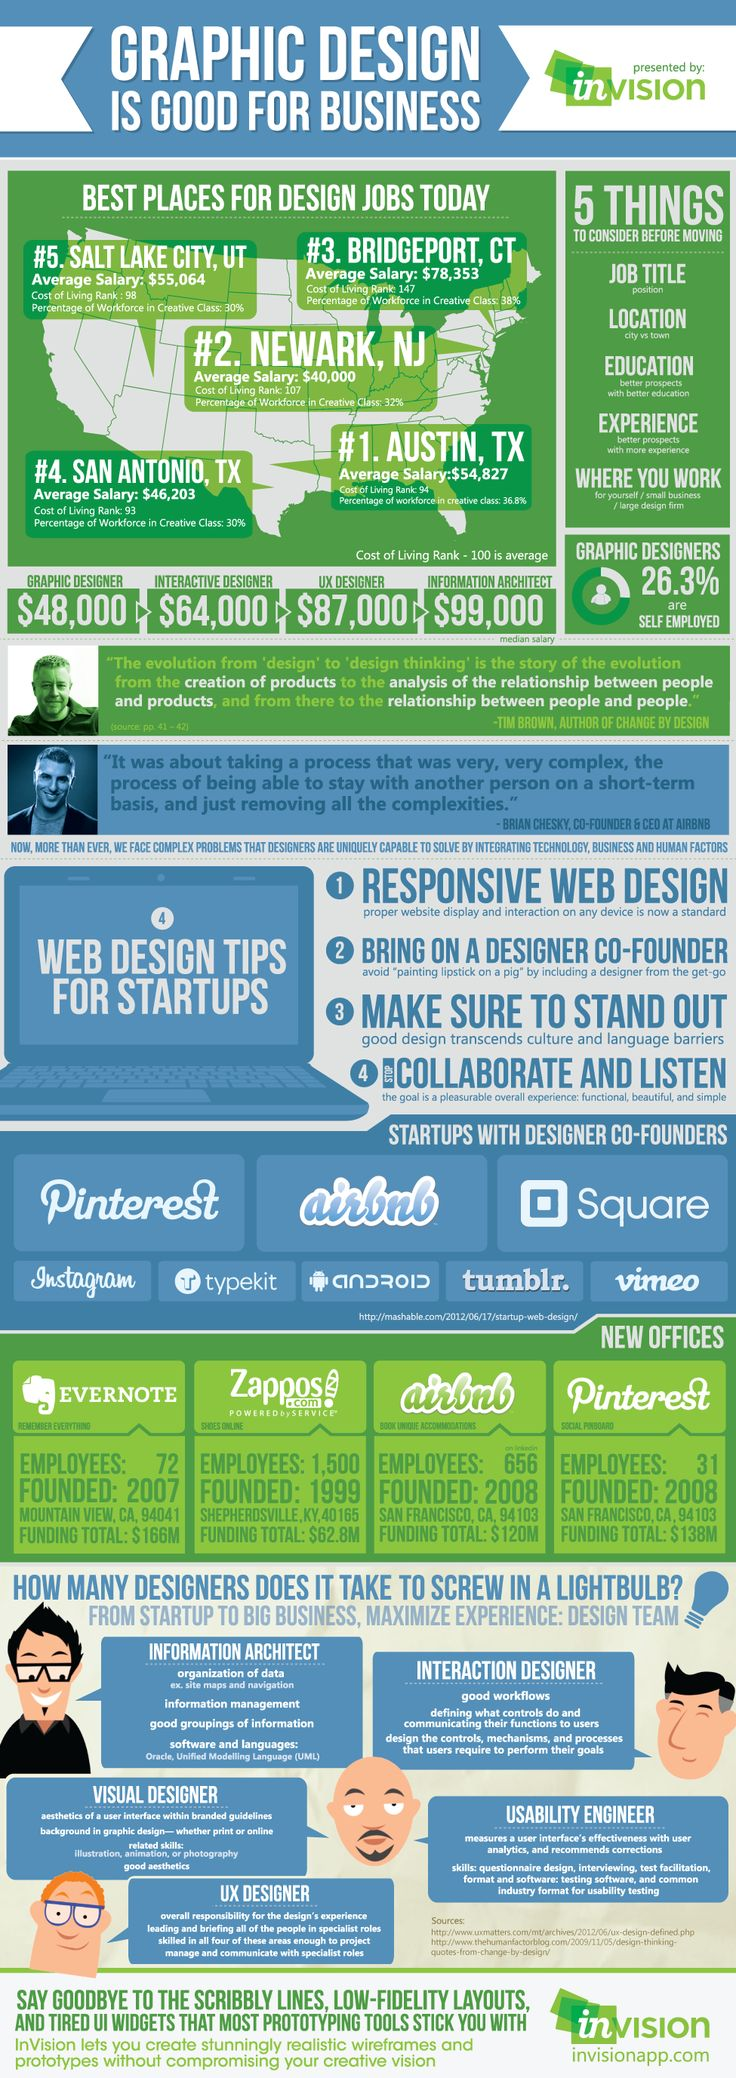 Graphic Design Is Good For Business [INFOGRAPHIC]